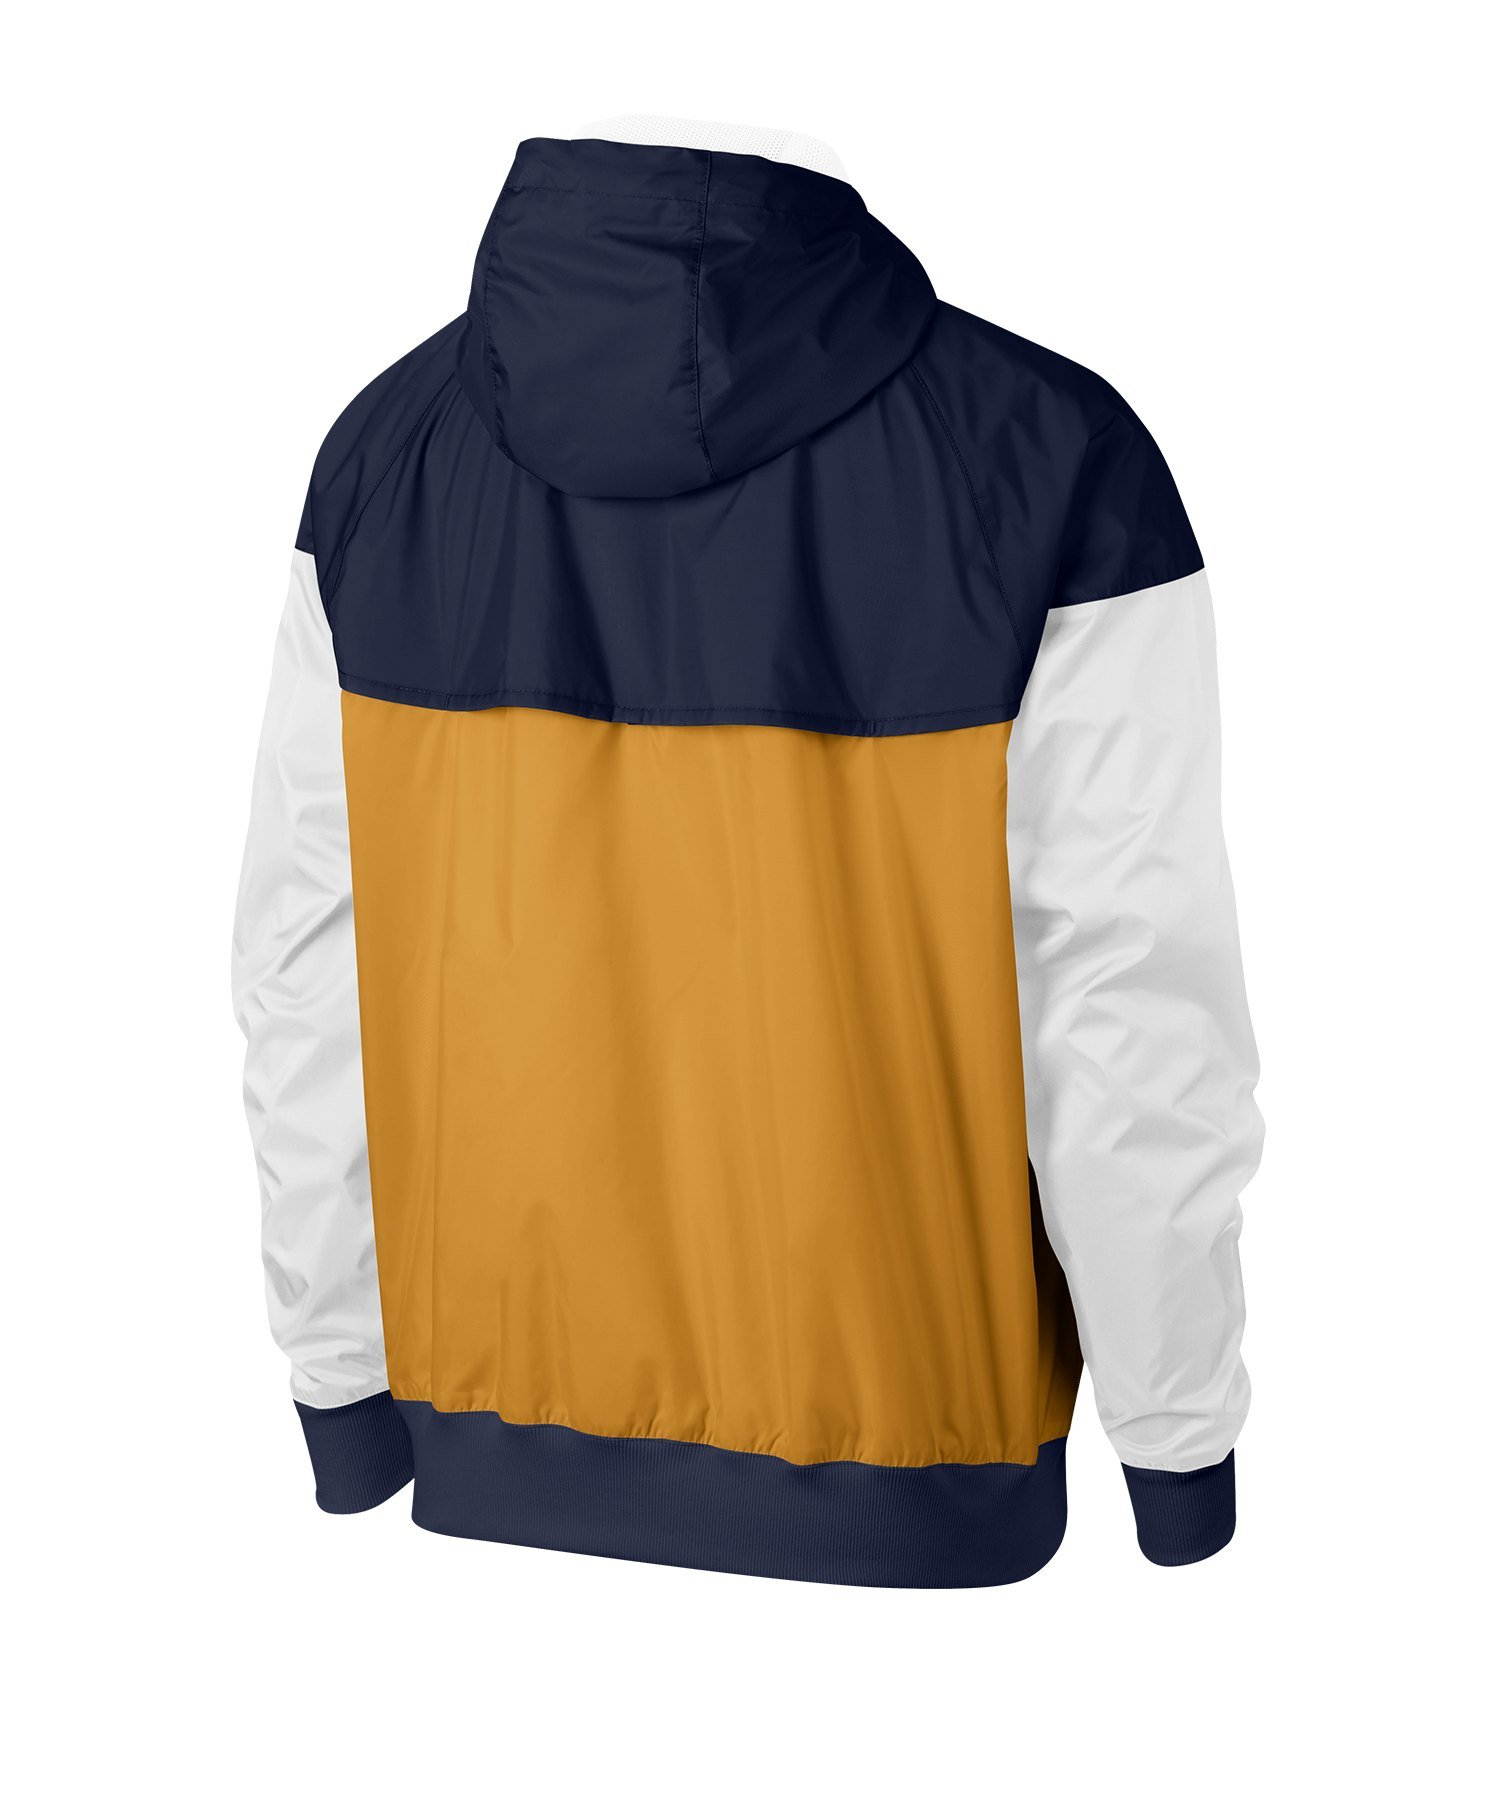 designer fashion clearance sale special section Nike